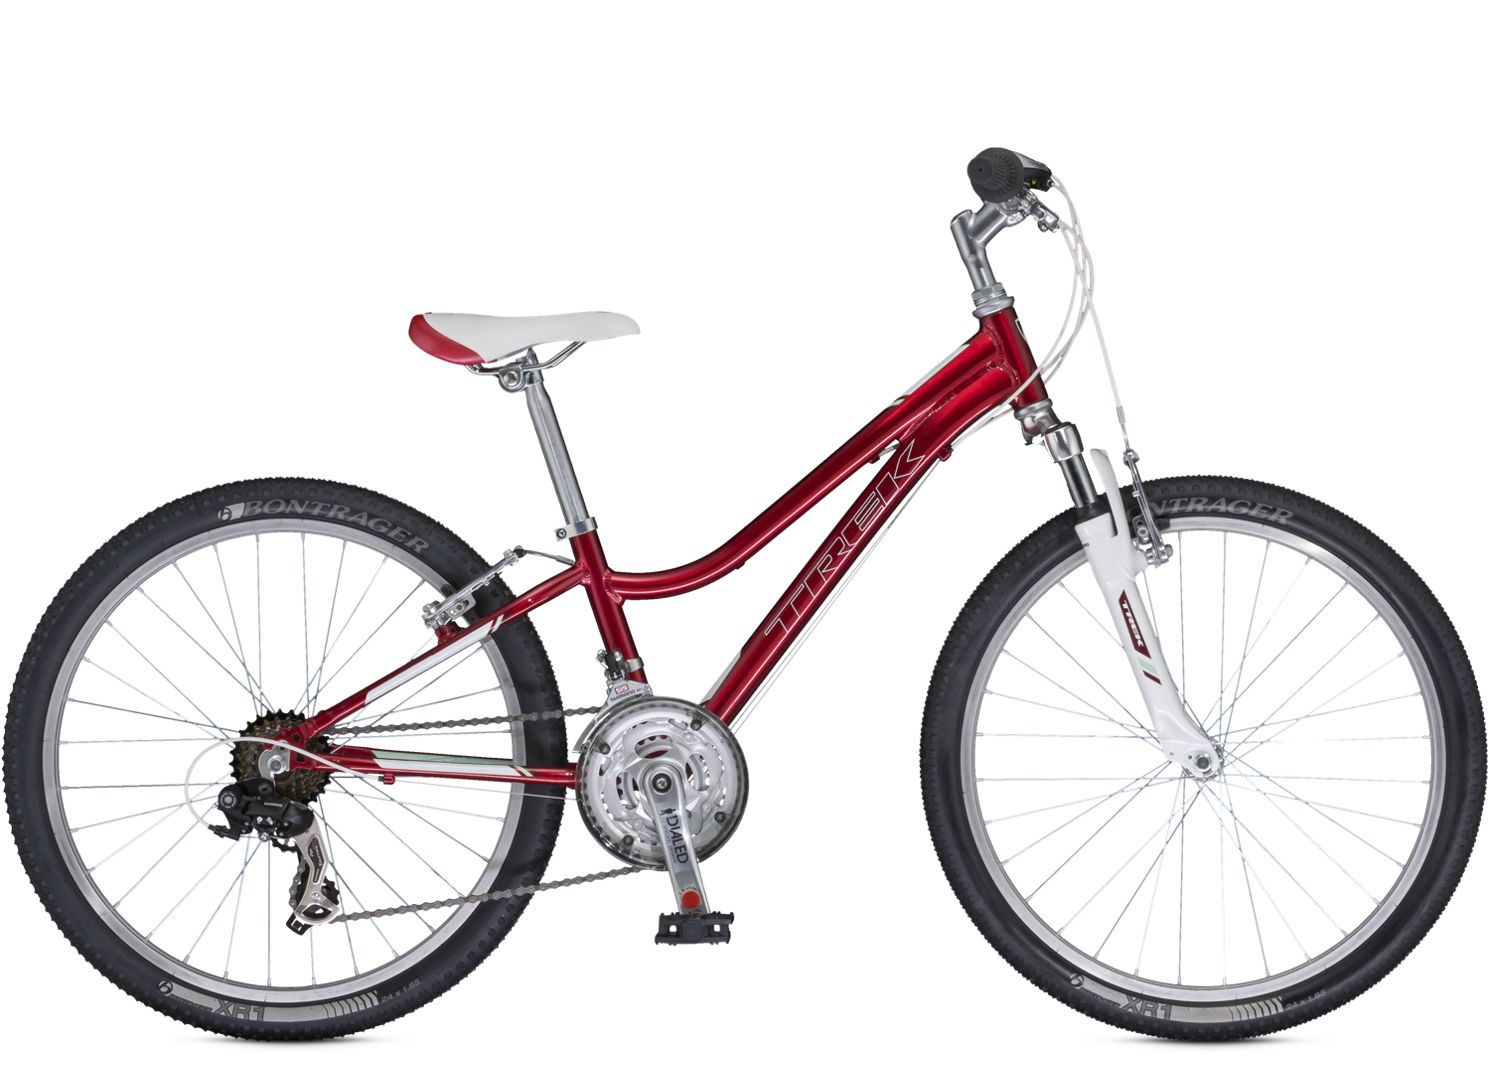 Sport Kids Mt 220 Girls Trek Kids Mountain Bikes Are The Real Deal With Light Frames Knobby Tires Quality Part Kids Bike Trek Bicycle Kids Mountain Bikes